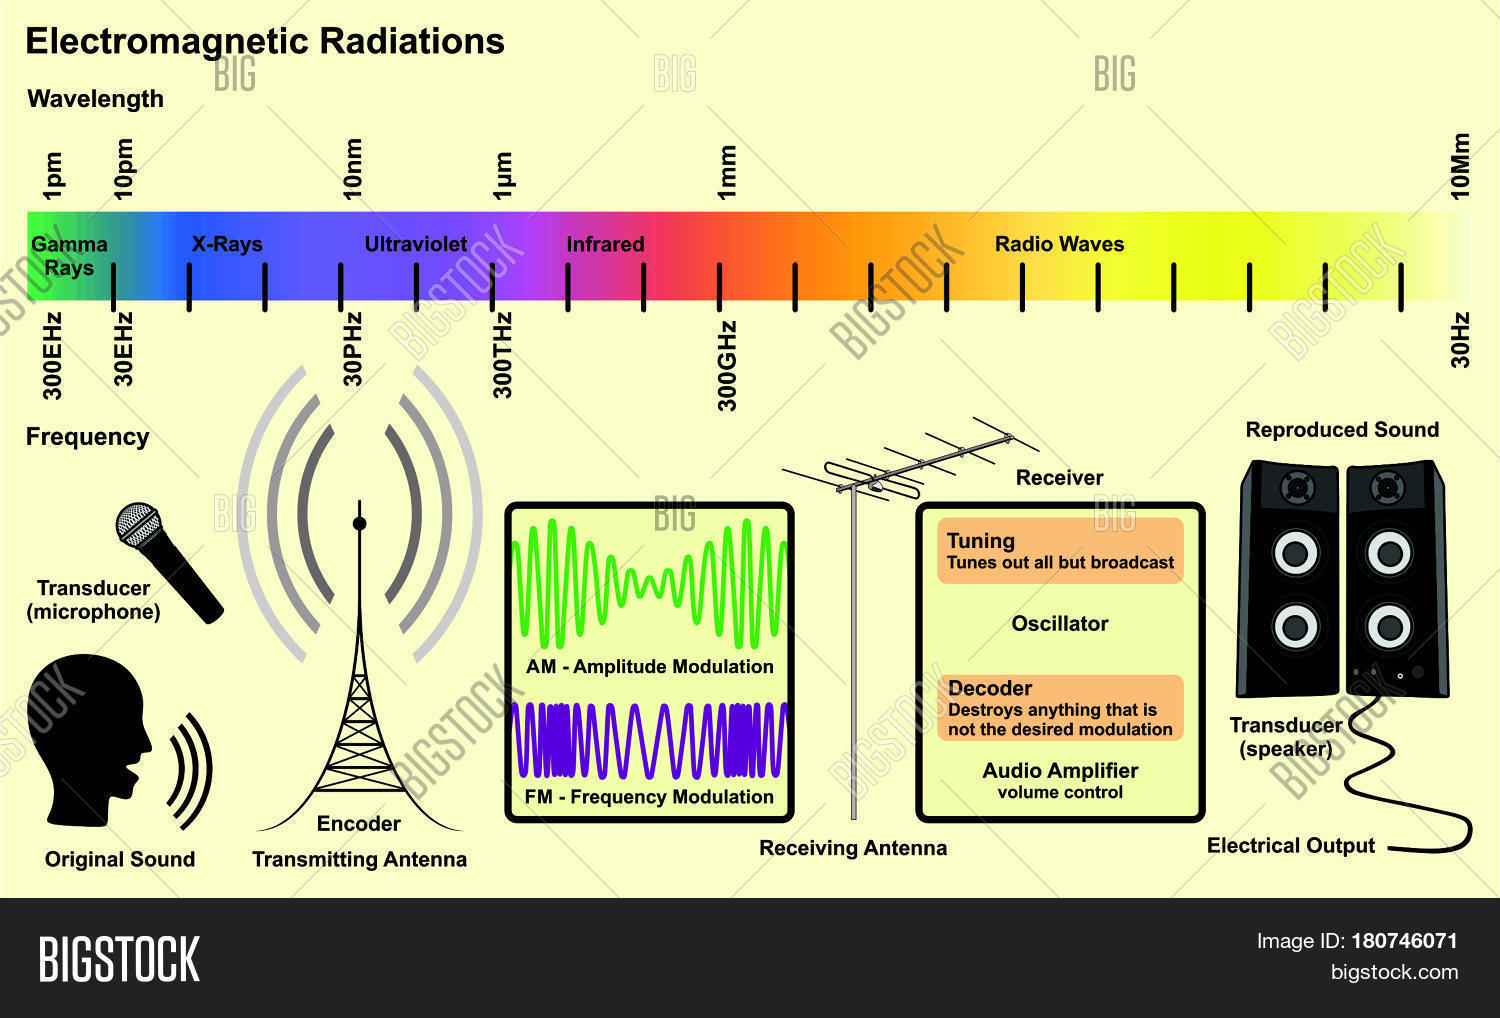 an overview of the wavelength concept of gamma rays Lesson summary uv light is a type of radiation that is all around us even what are gamma rays what is ultraviolet light - definition, wavelength & uses.